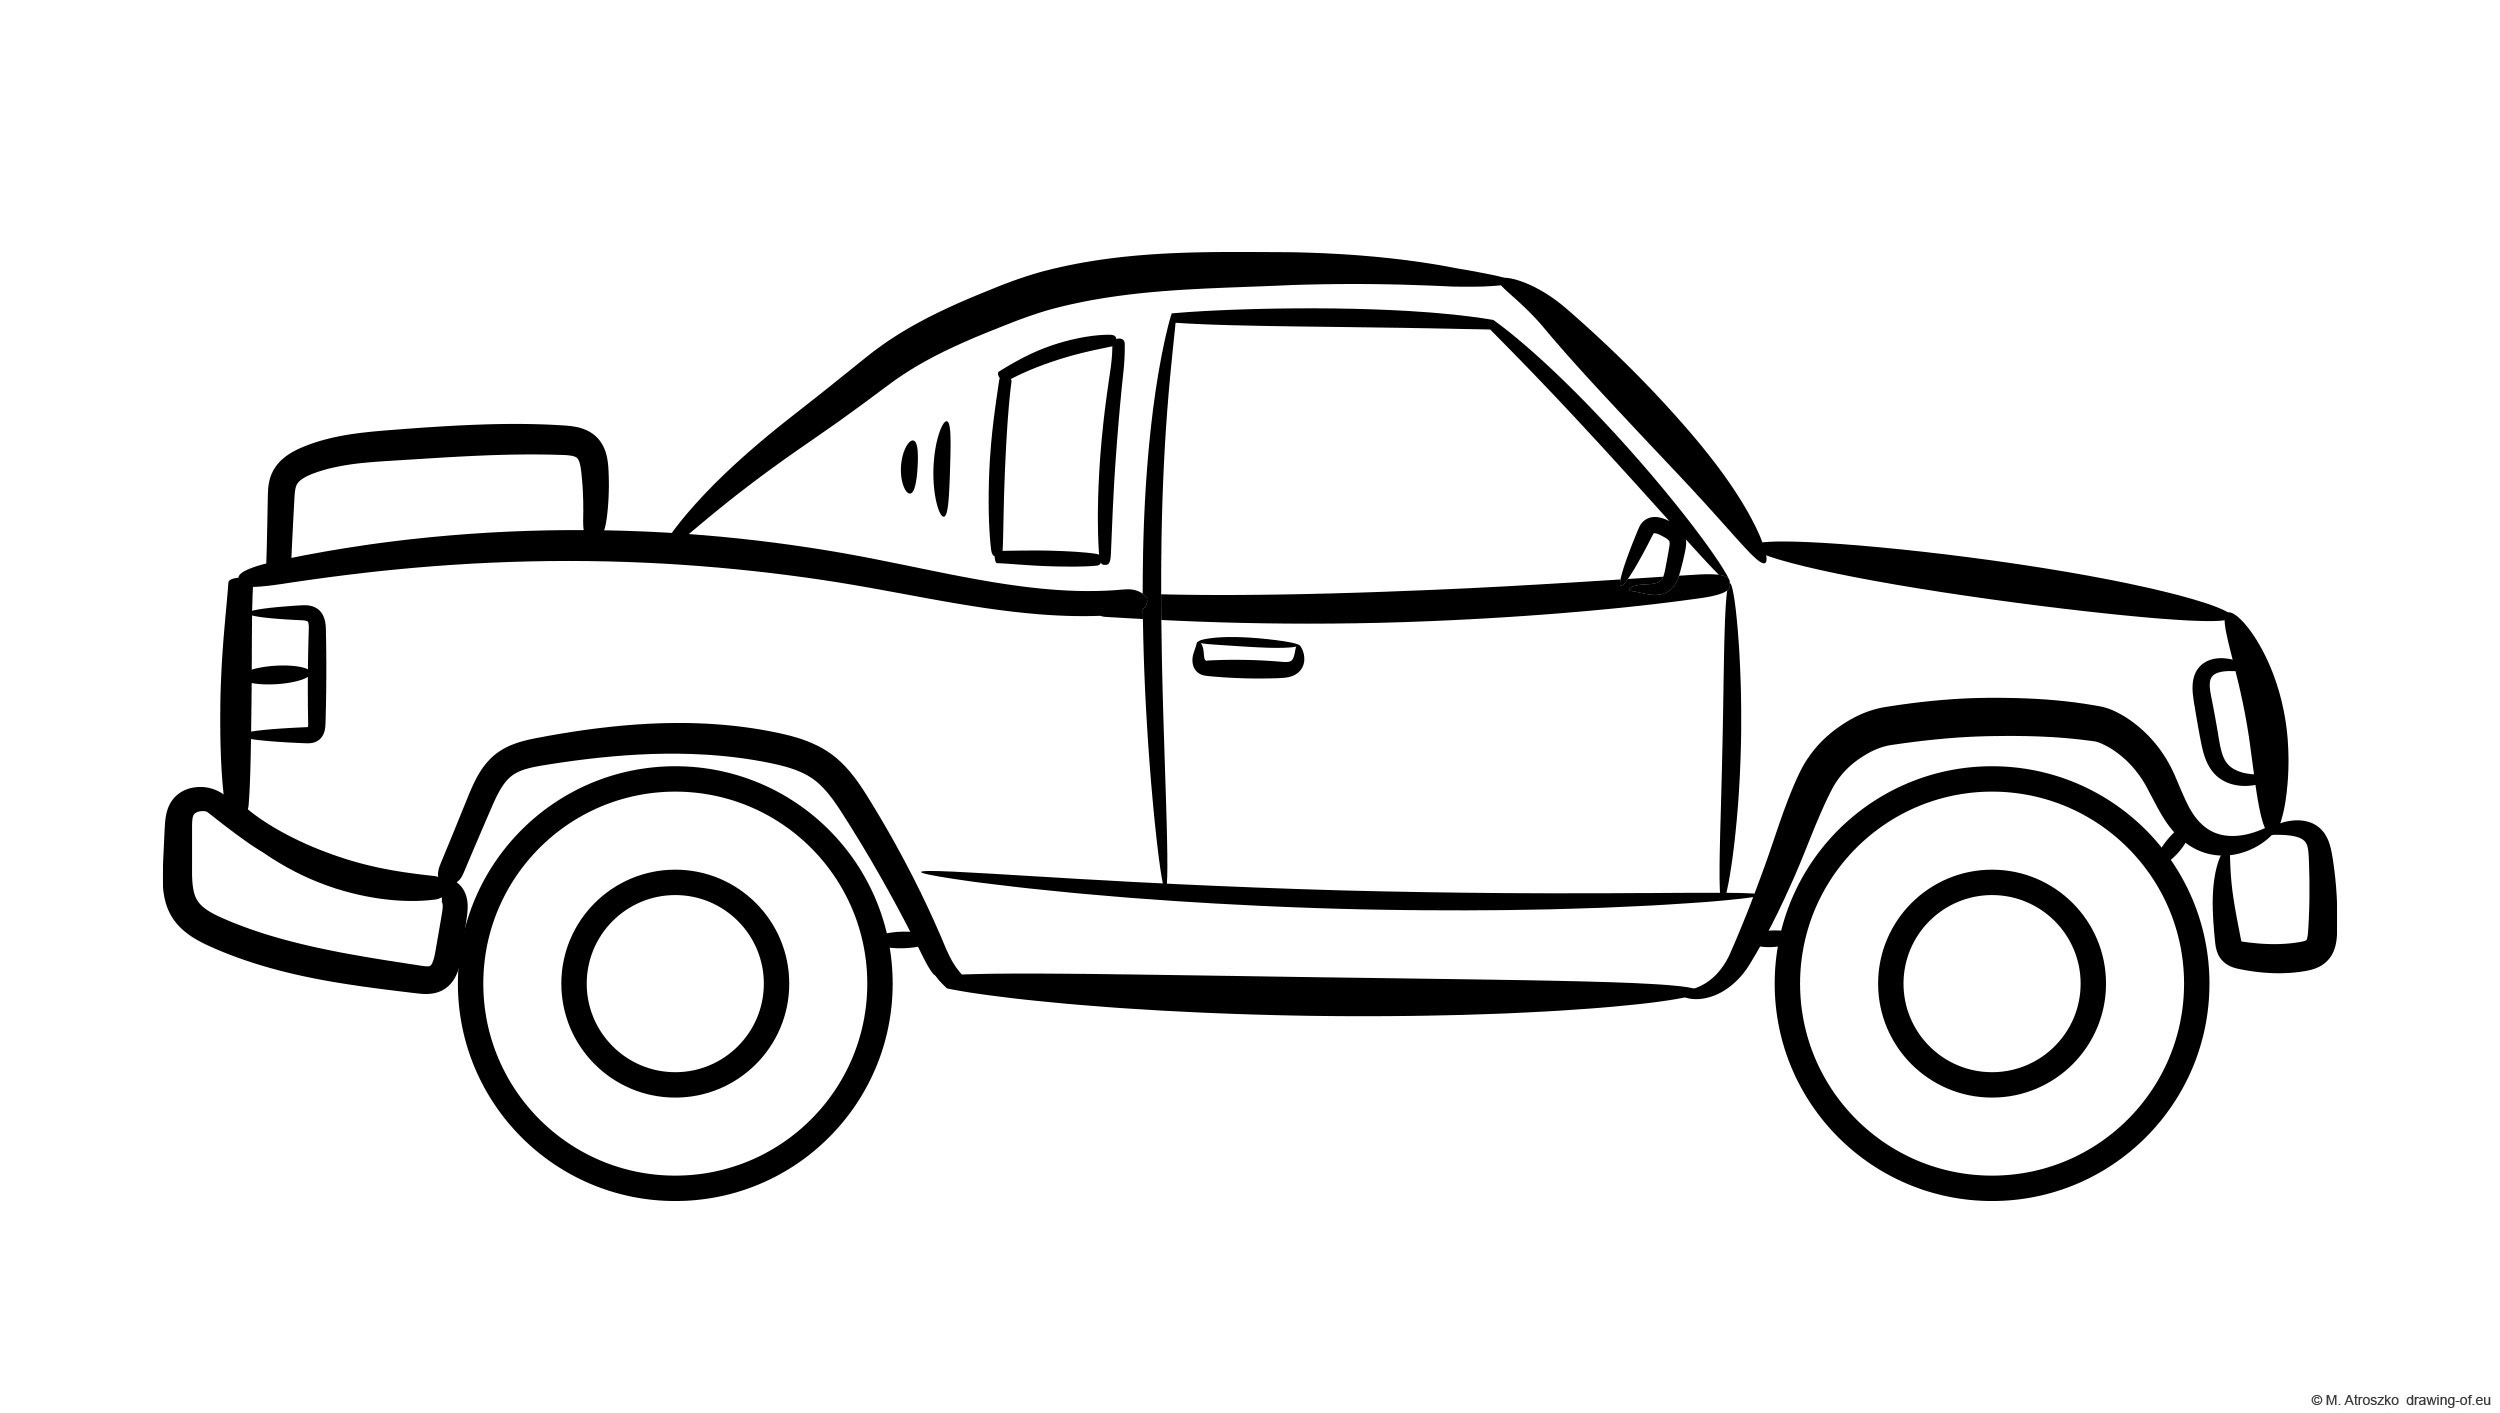 off-road car coloring page